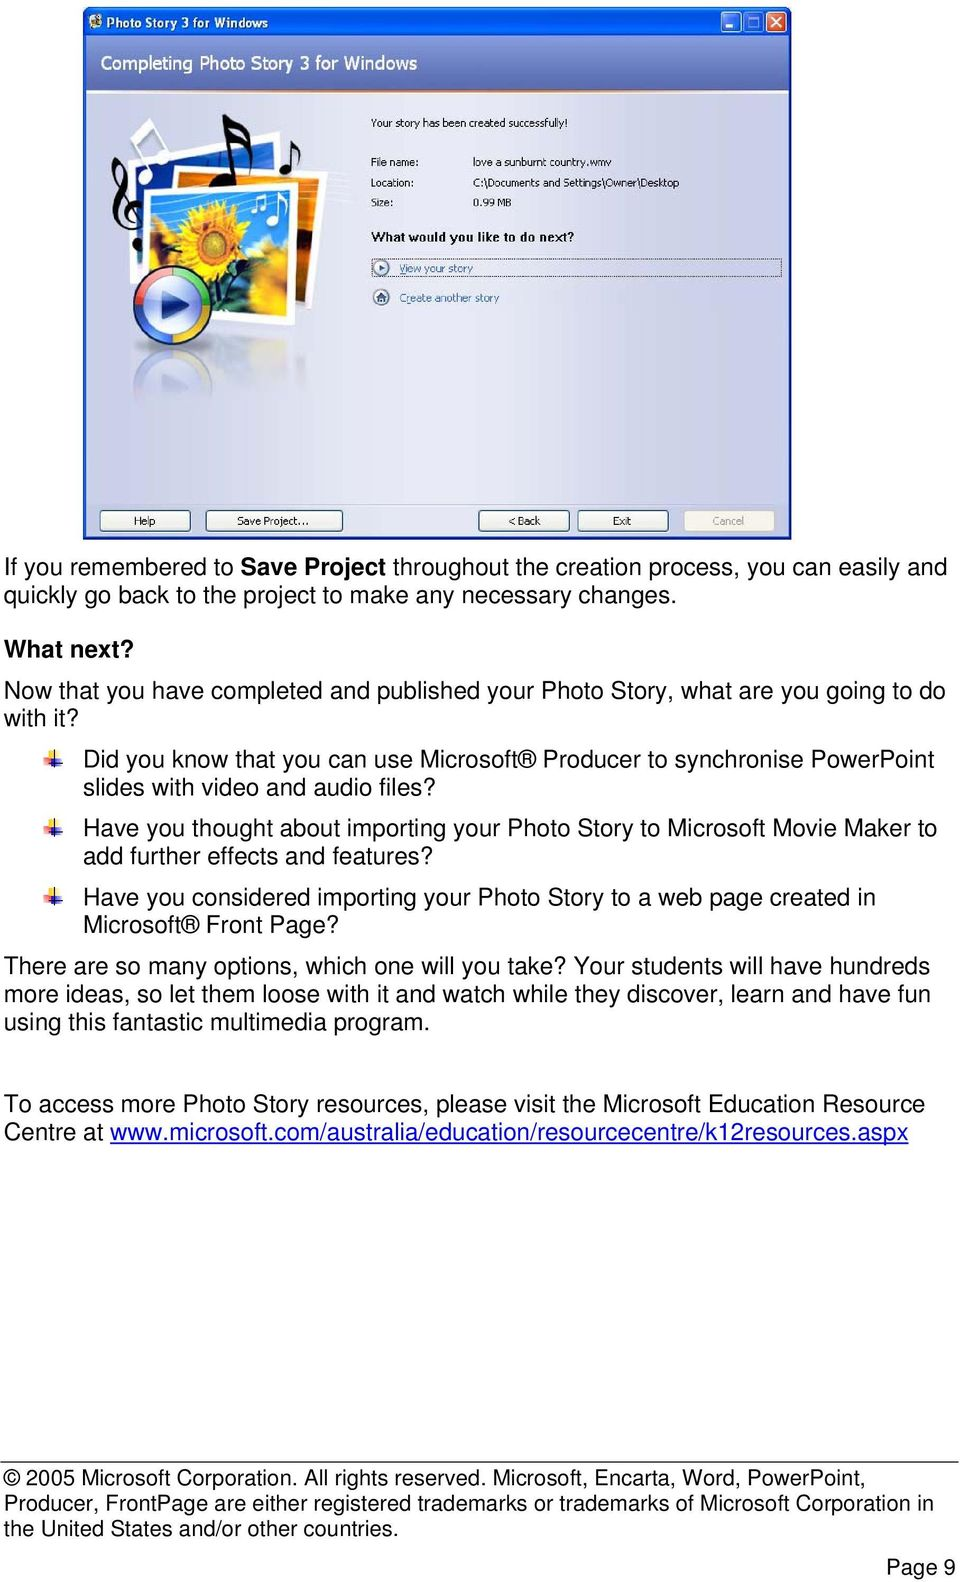 Did you know that you can use Microsoft Producer to synchronise PowerPoint slides with video and audio files?